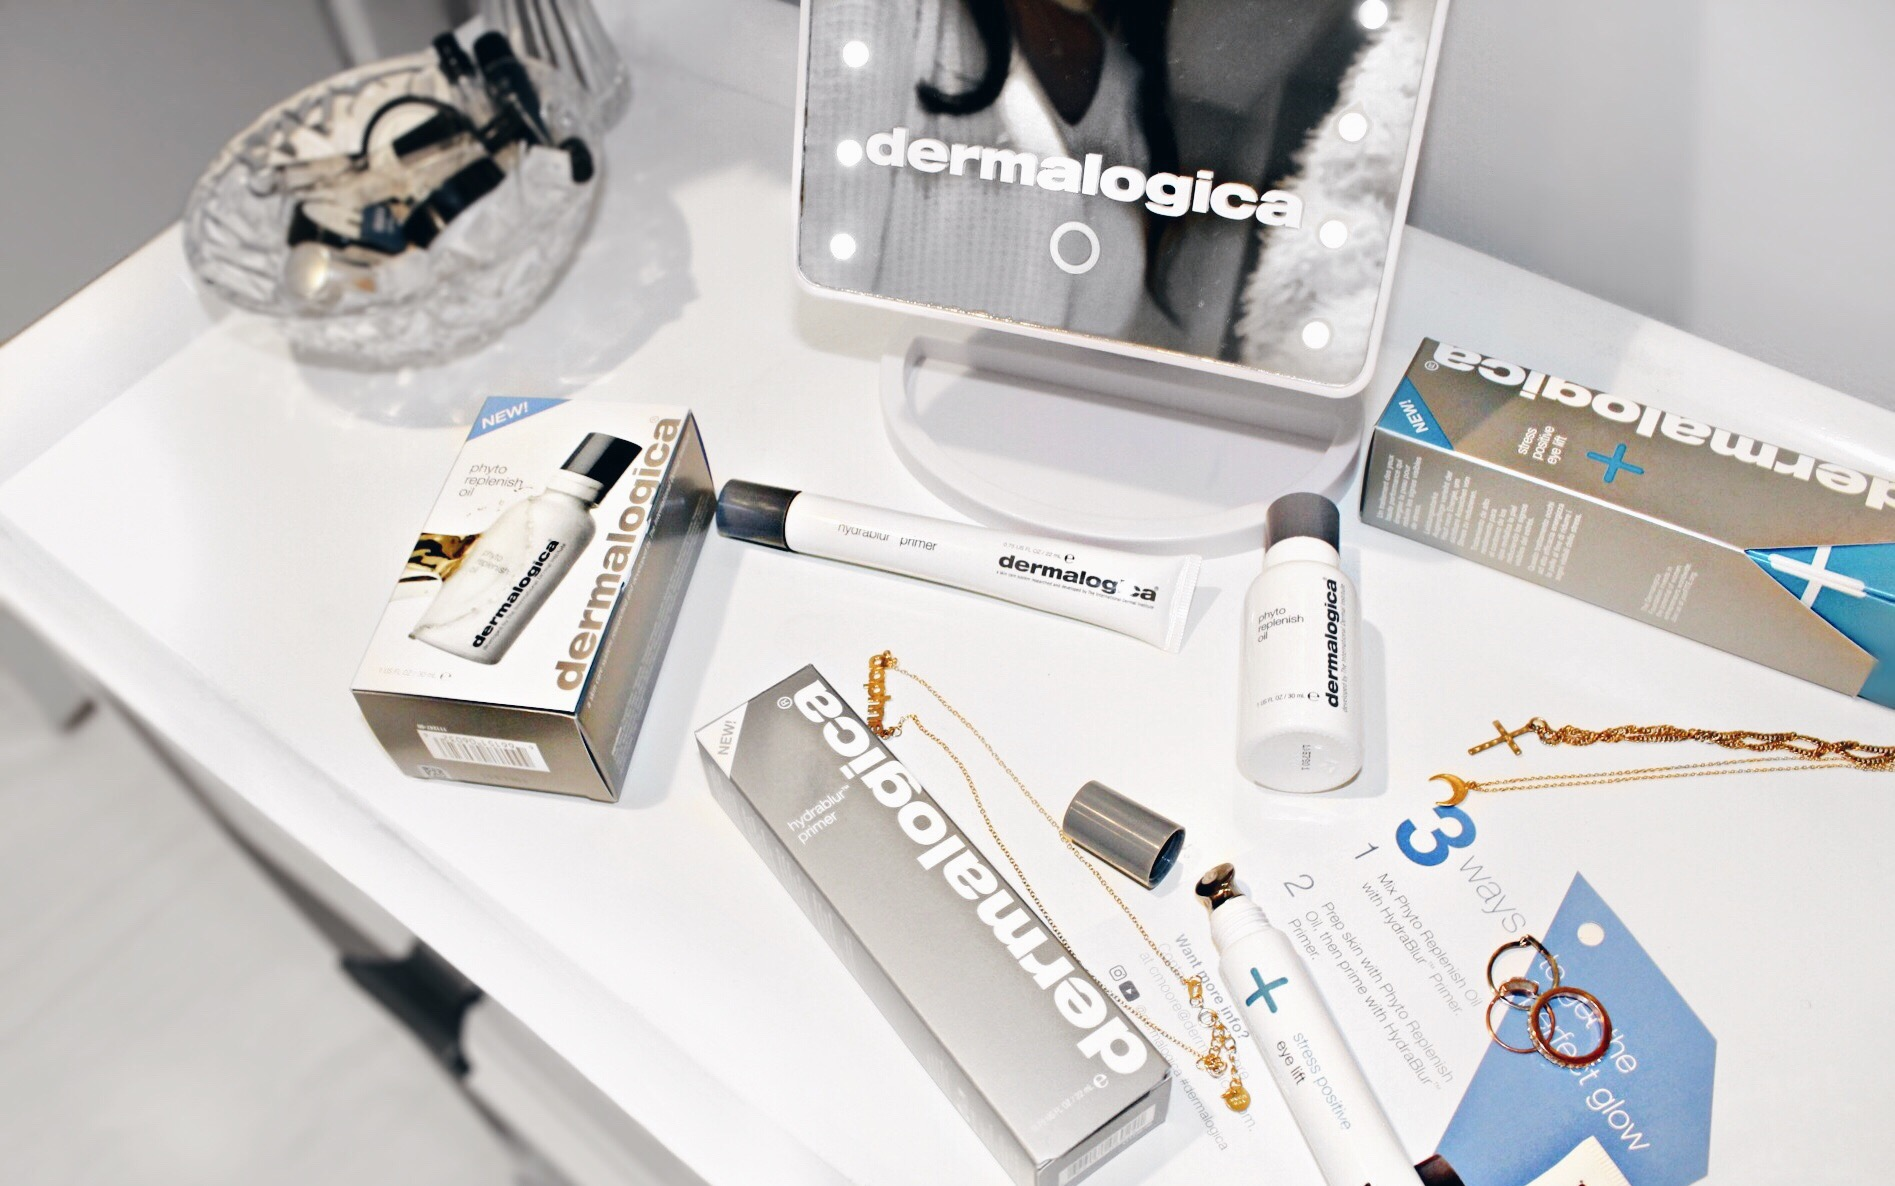 On My Vanity: Excess Dermalogica // Dermalogica Phyto Replenish Oil // Dermalogica Stress Positive Eye Lift // Dermalogica Hydrablur Primer // New Beauty Essentials Makeup and Skincare // Los Angeles Fashion Blogger Daphne Blunt: To Style, With Love